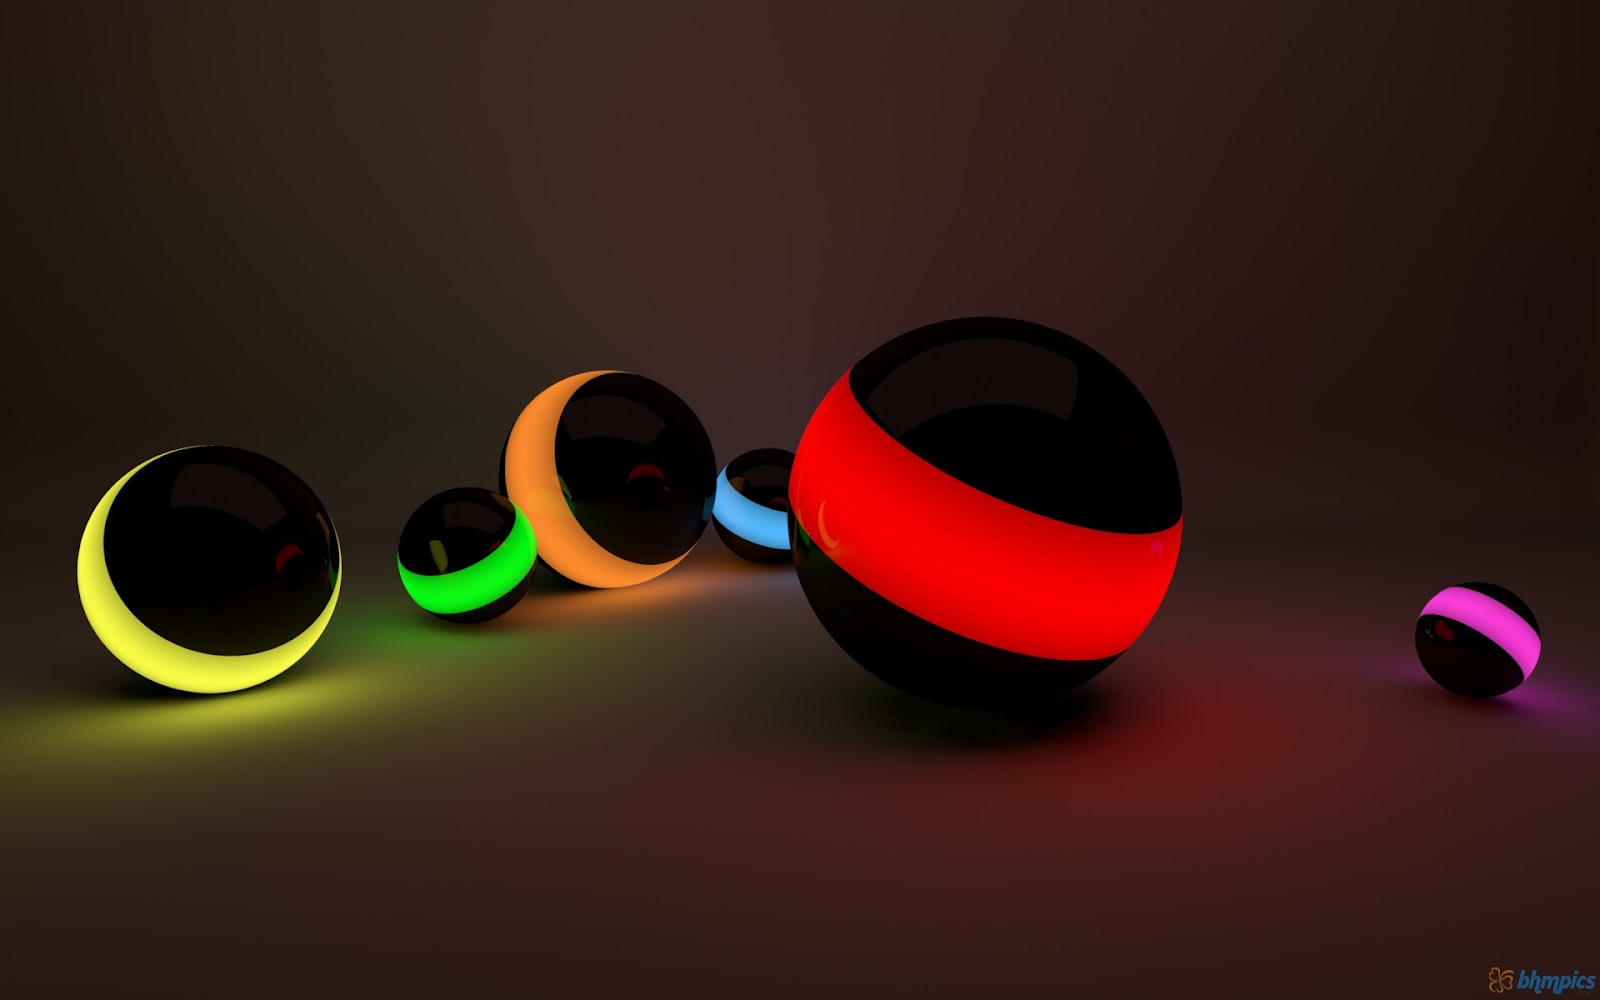 3d-hd-wallpapers-colorful-ball-for-laptop-free-download - united